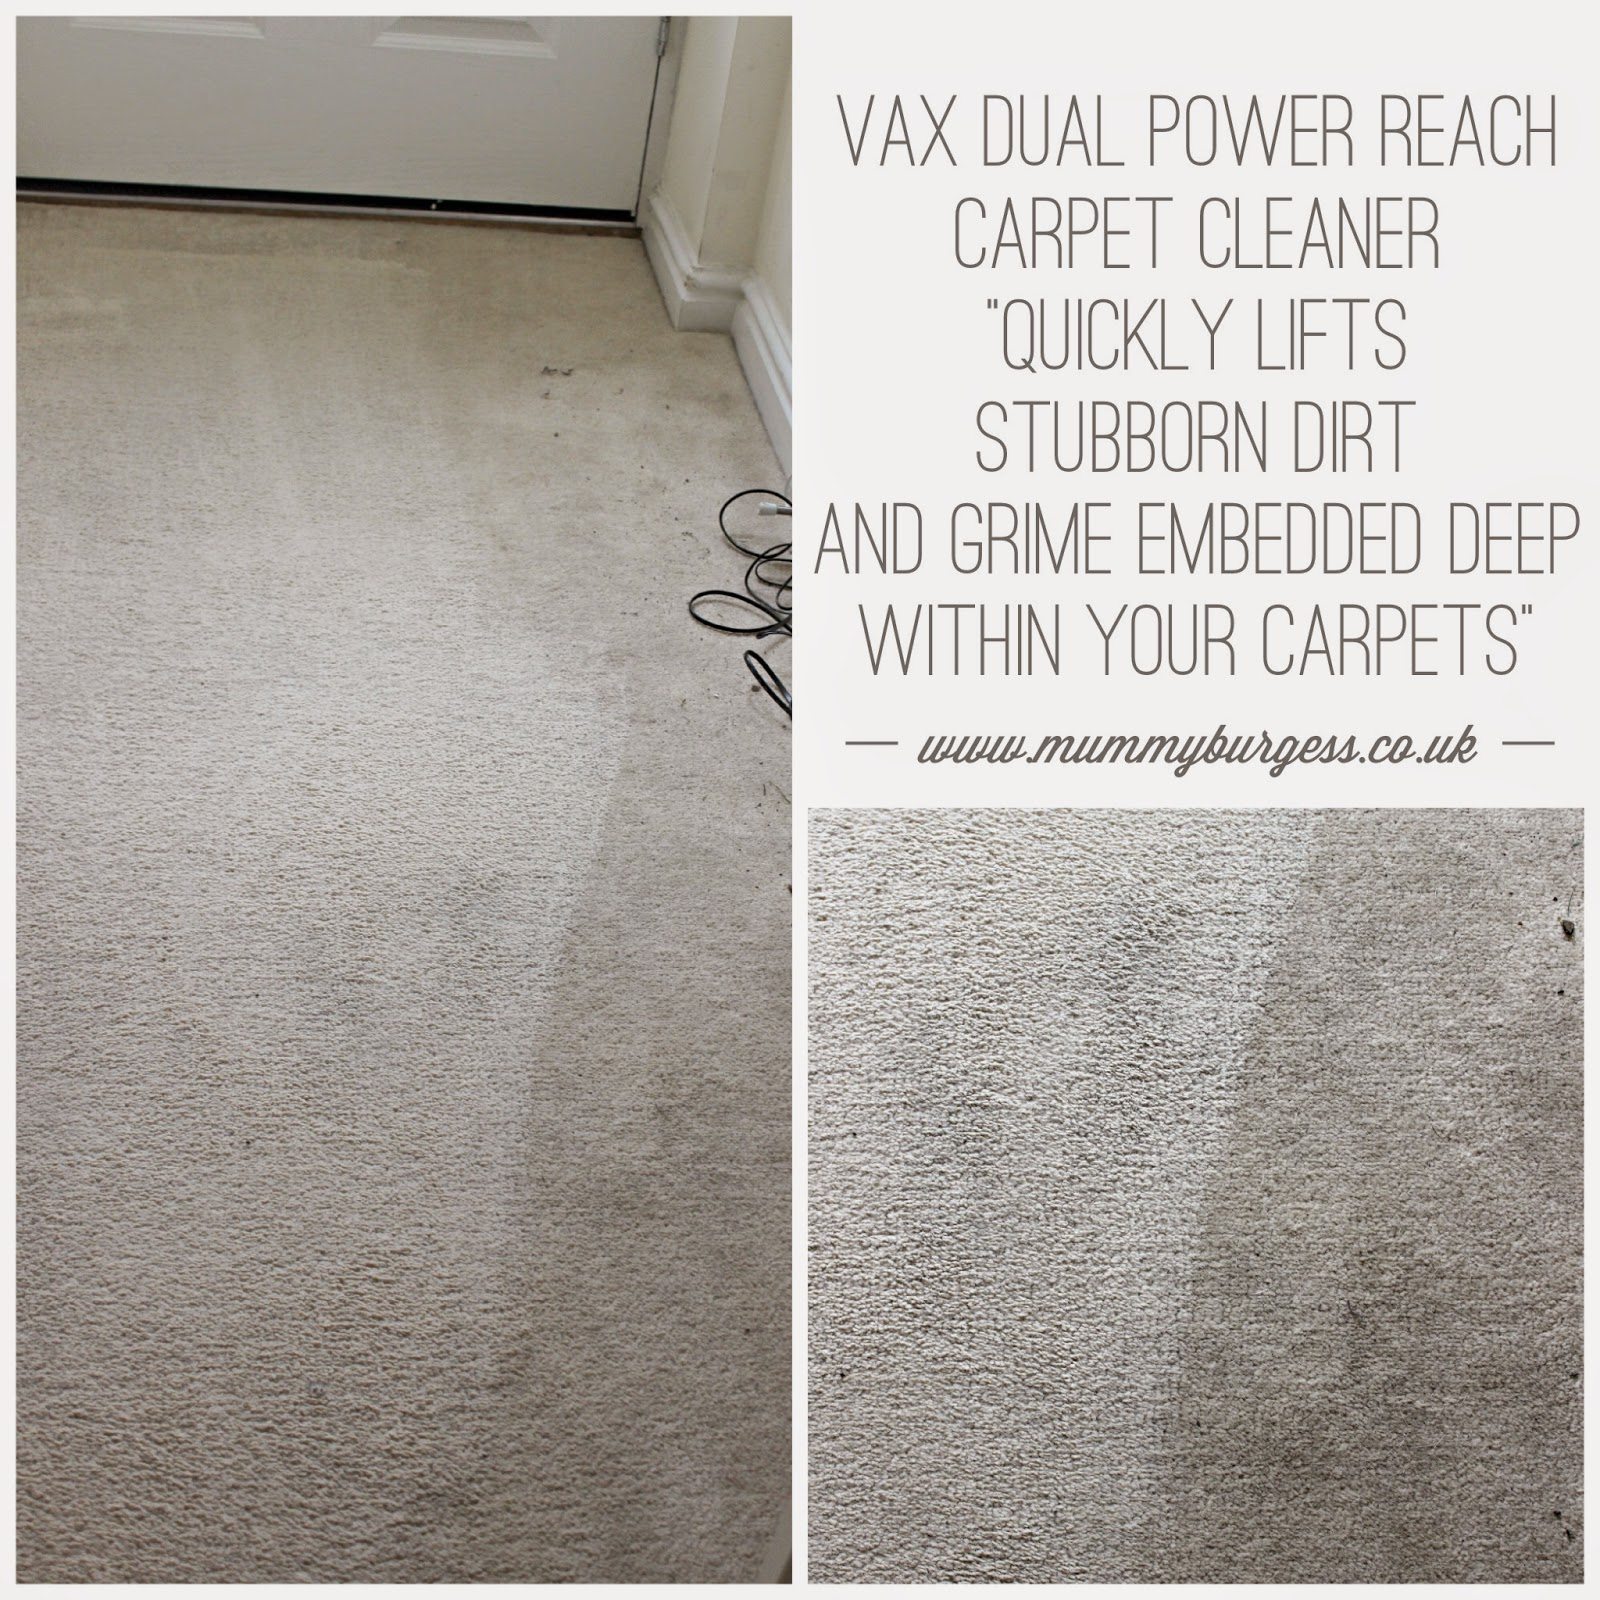 ... this carpet cleaner has worked miracleade my cleaning such a breeze i have bee obsessed at vax ...